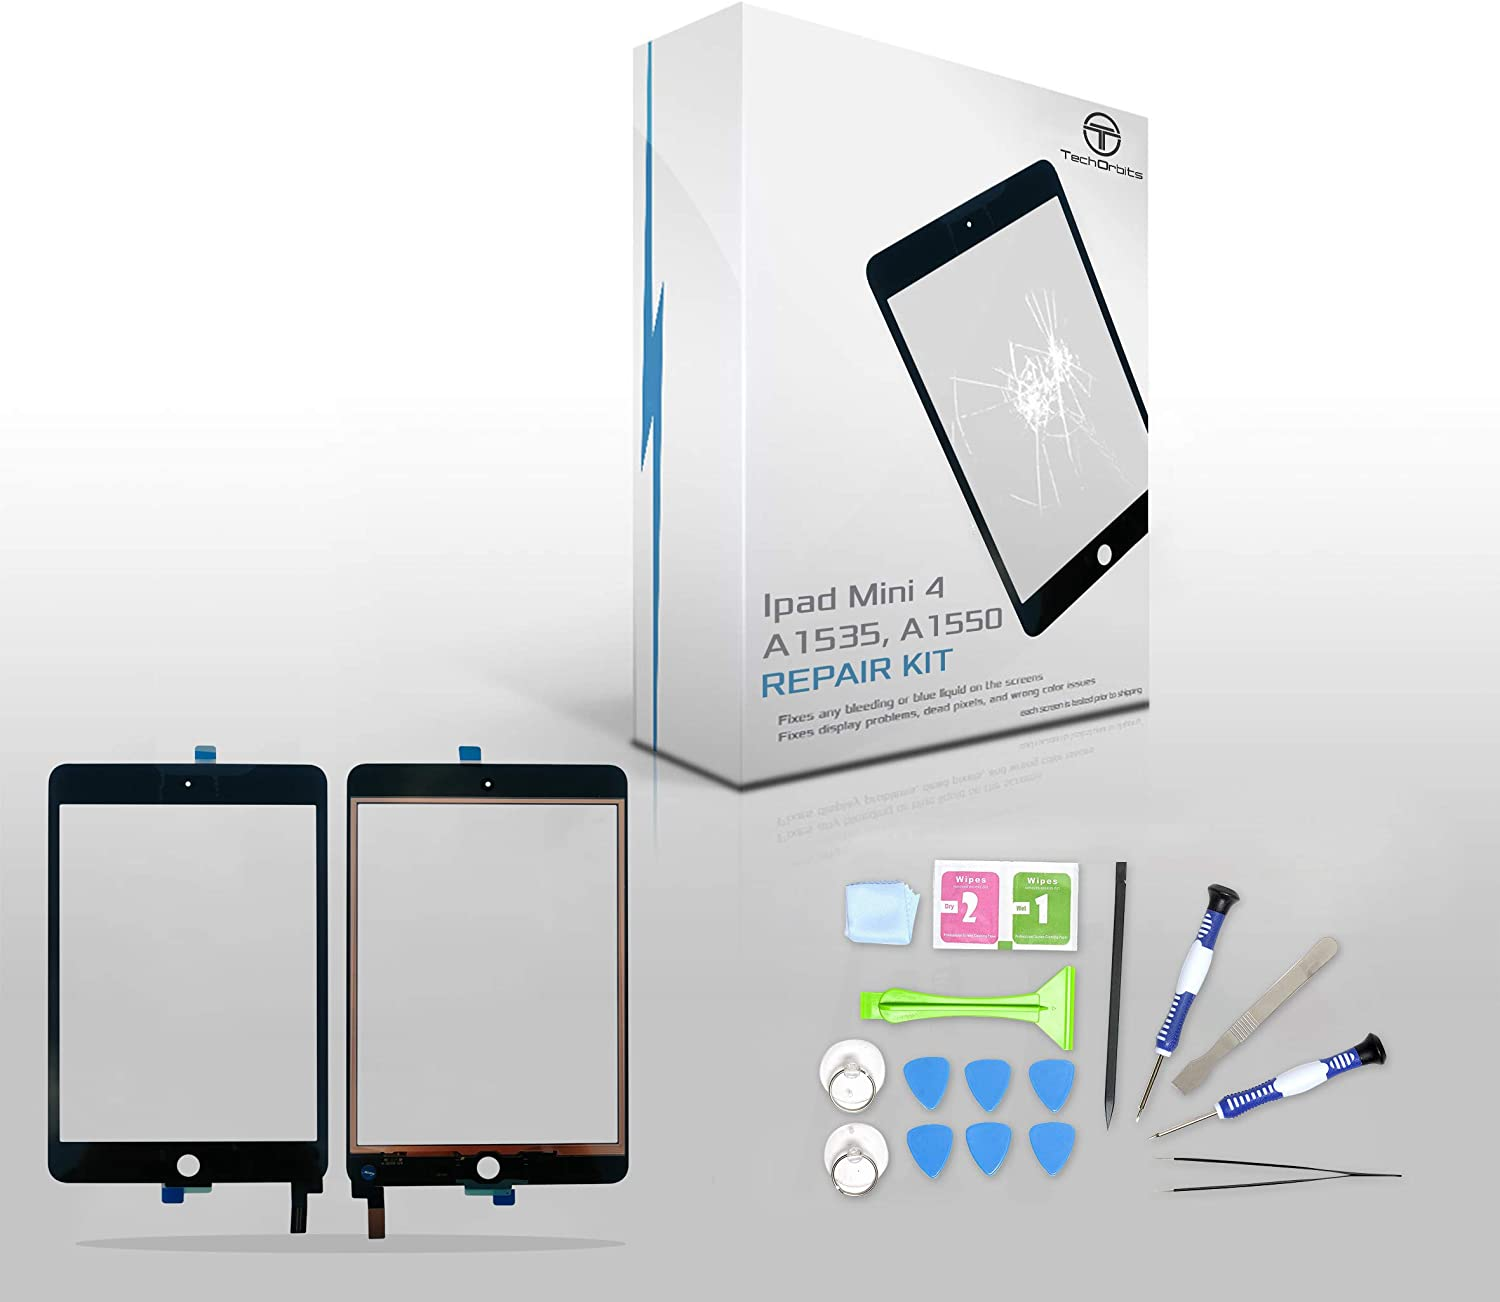 "TechOrbits Replacement 7.9"" Touch Screen Digitizer Glass for Ipad Mini 4 (A1535, A1550) AT&T/T-Mobile/Sprint/Verizon, GSM CDMA Black with Repair Kit."